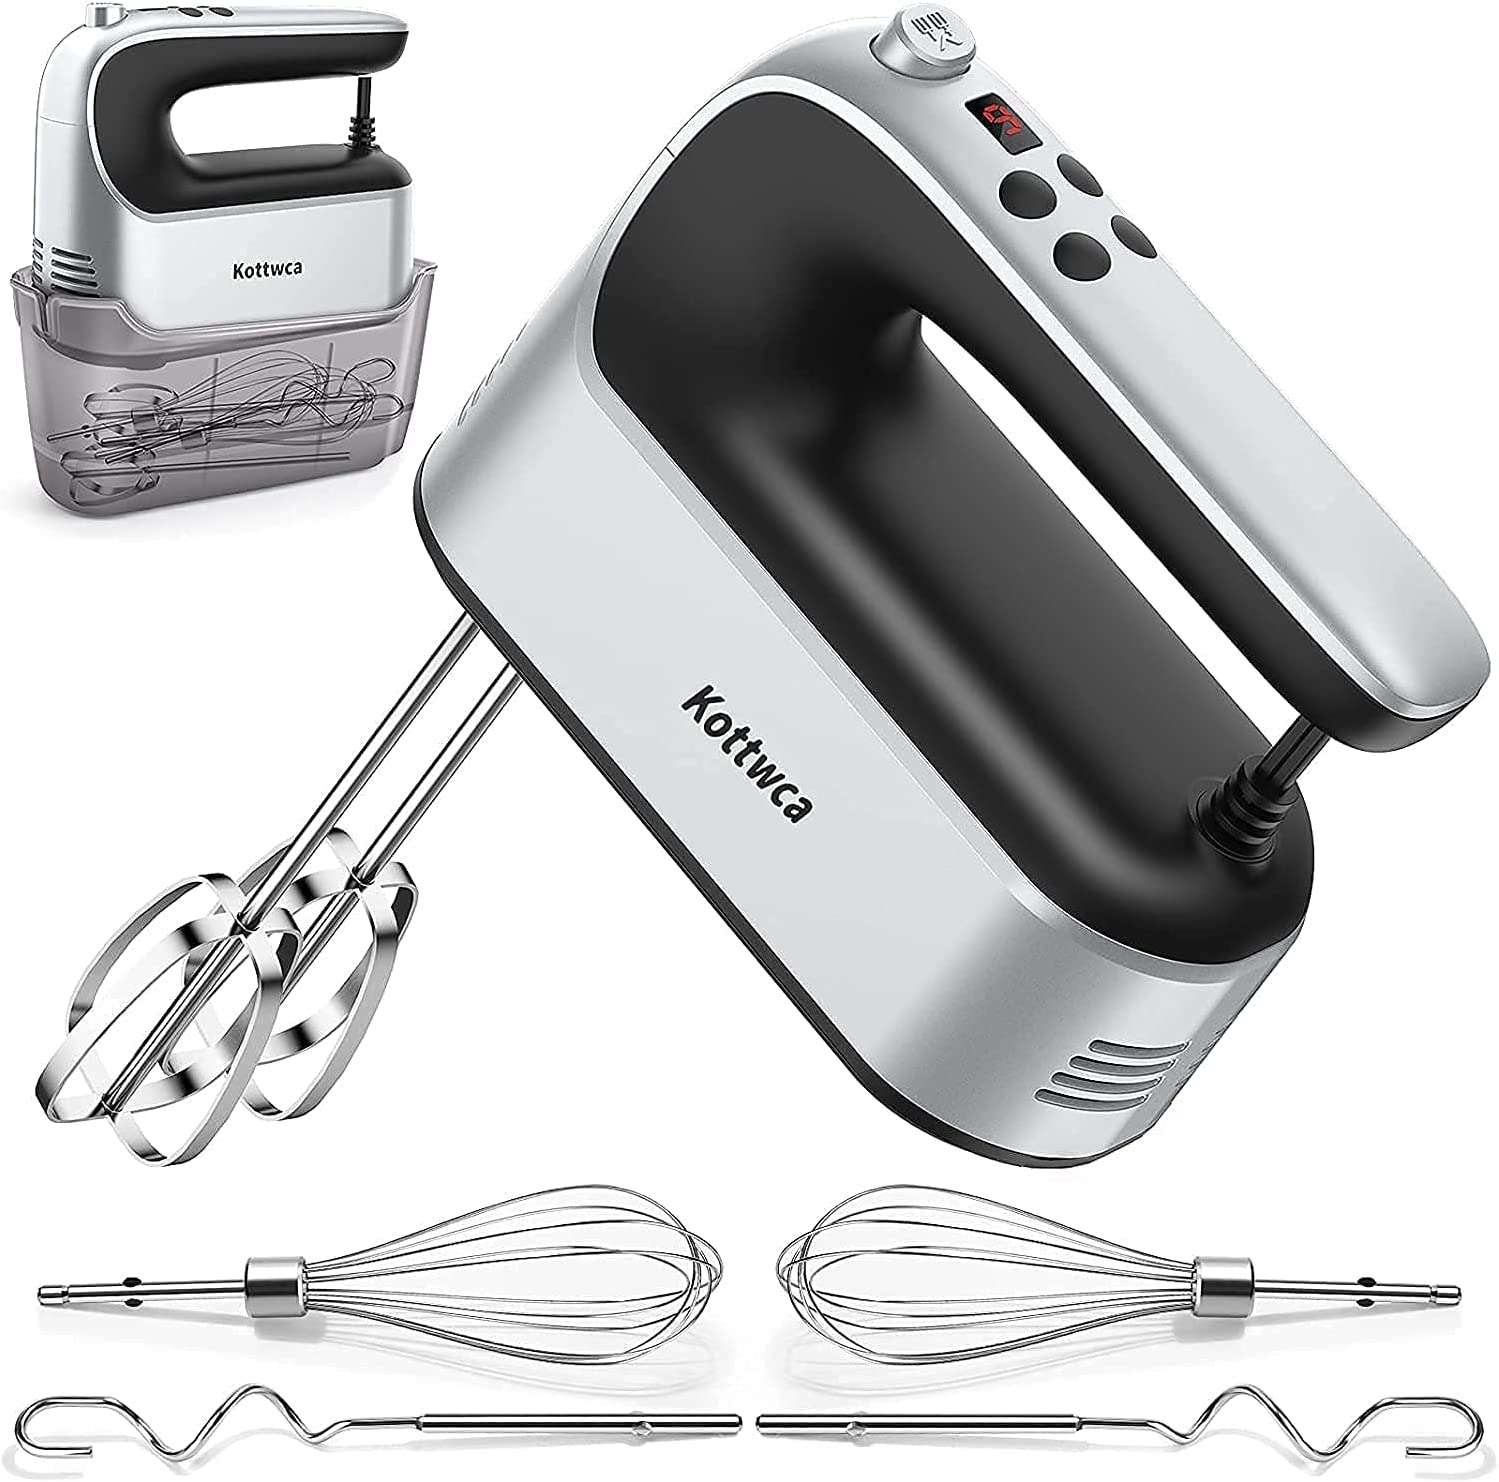 Hand Mixer Electric with Storage Case, 450W 9-Speed Kitchen Handheld Mixer with Digital Screen, 6 Stainless Steel Attachments+ Eject Button, for Whipping Dough Cream Cake Egg Salad Biscuit